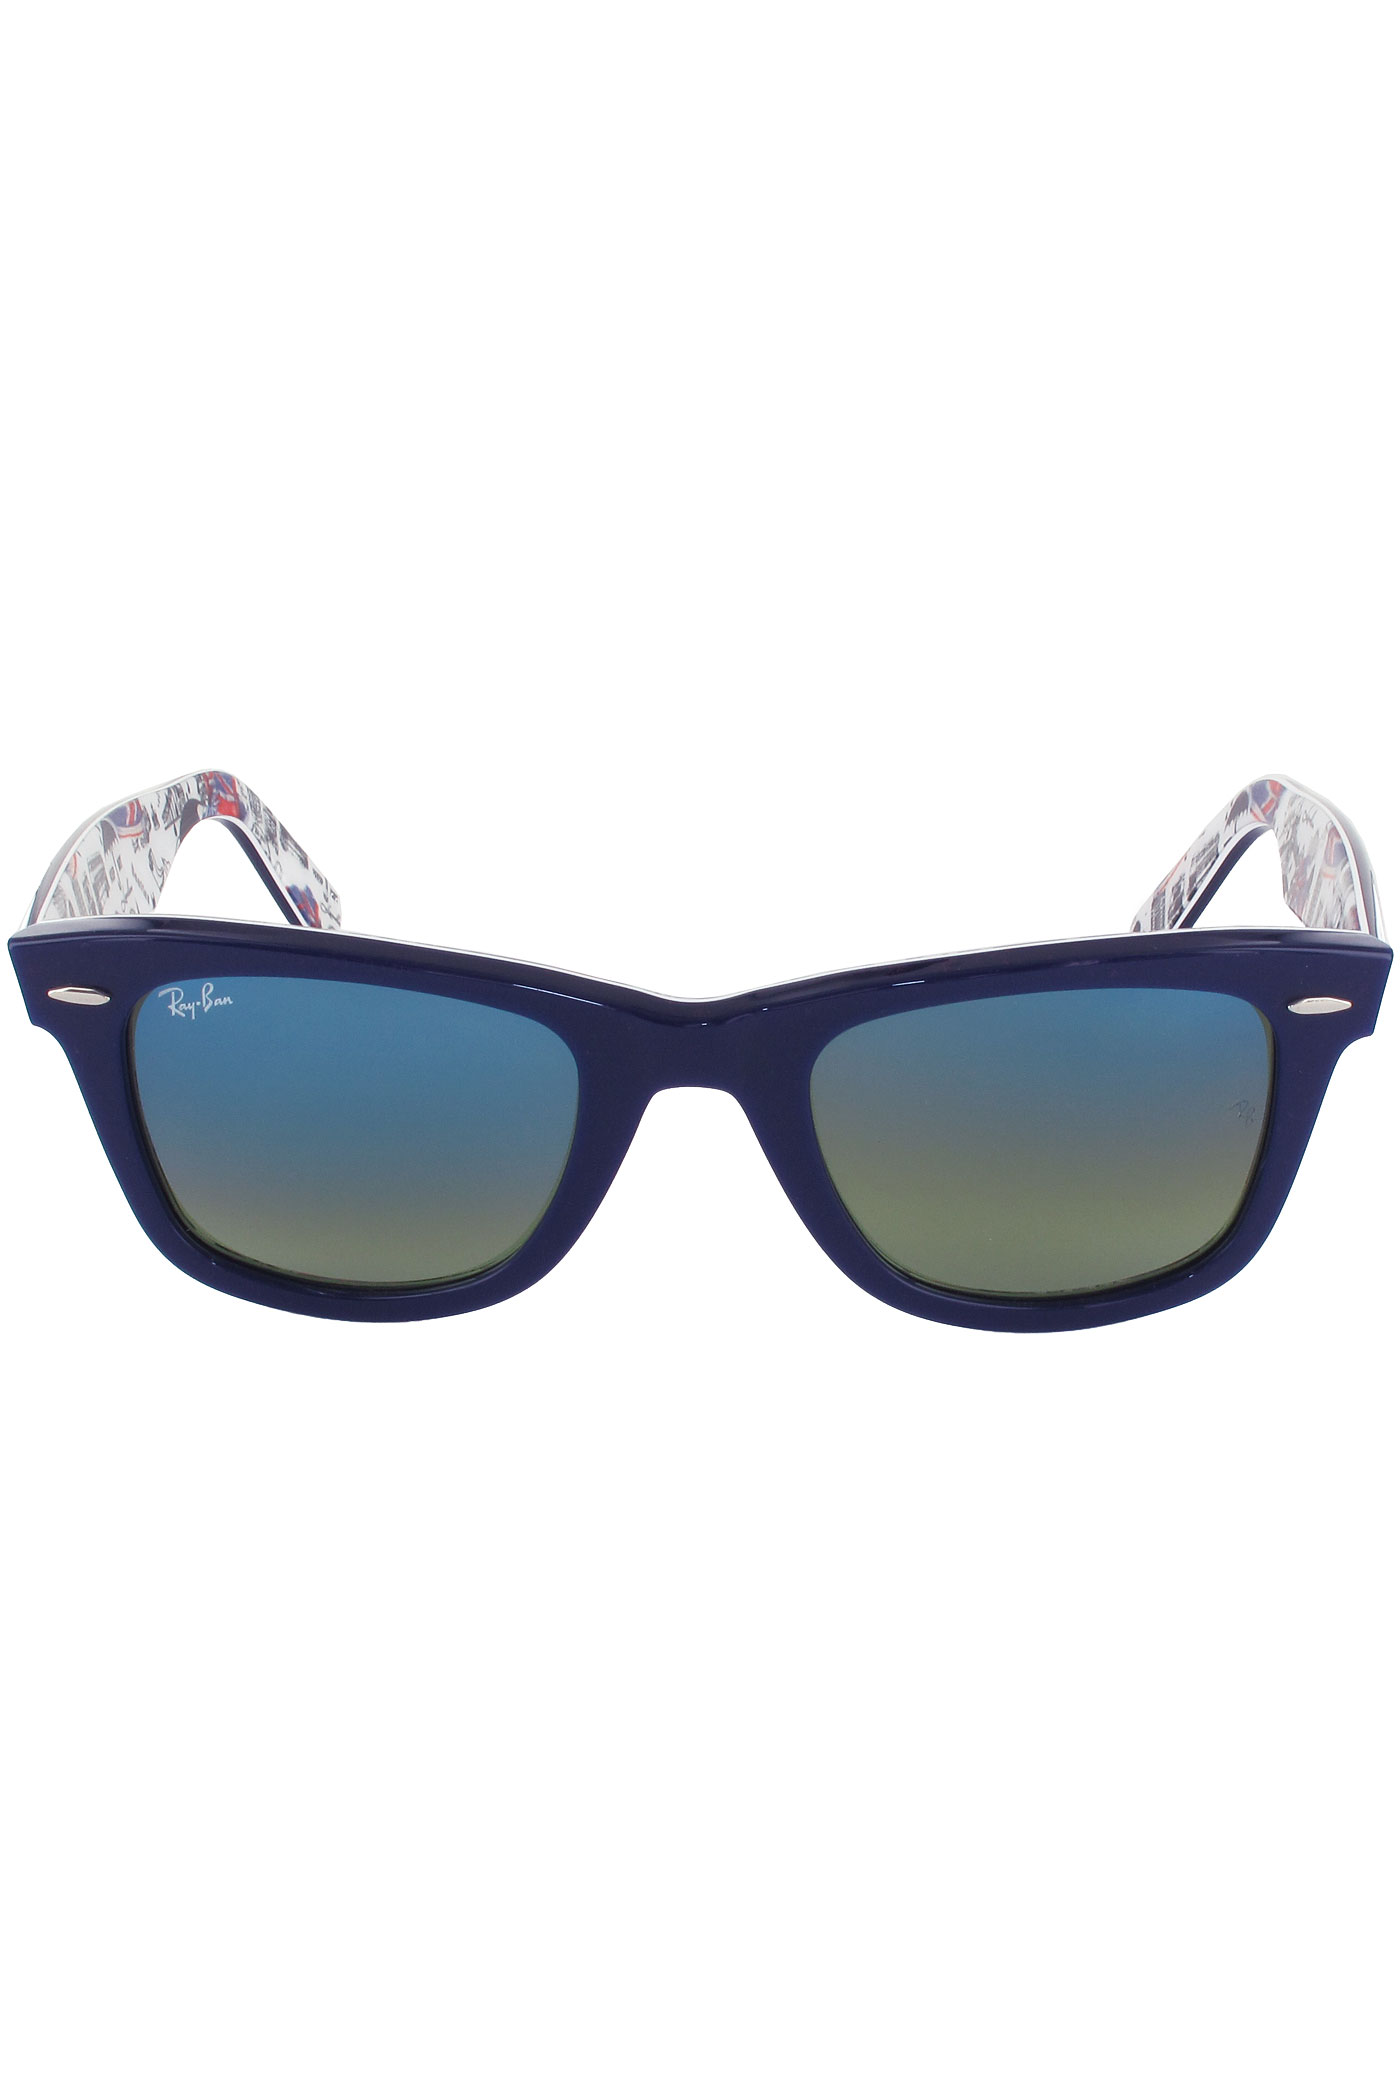 cheap ray ban london  ray ban wayfarer london